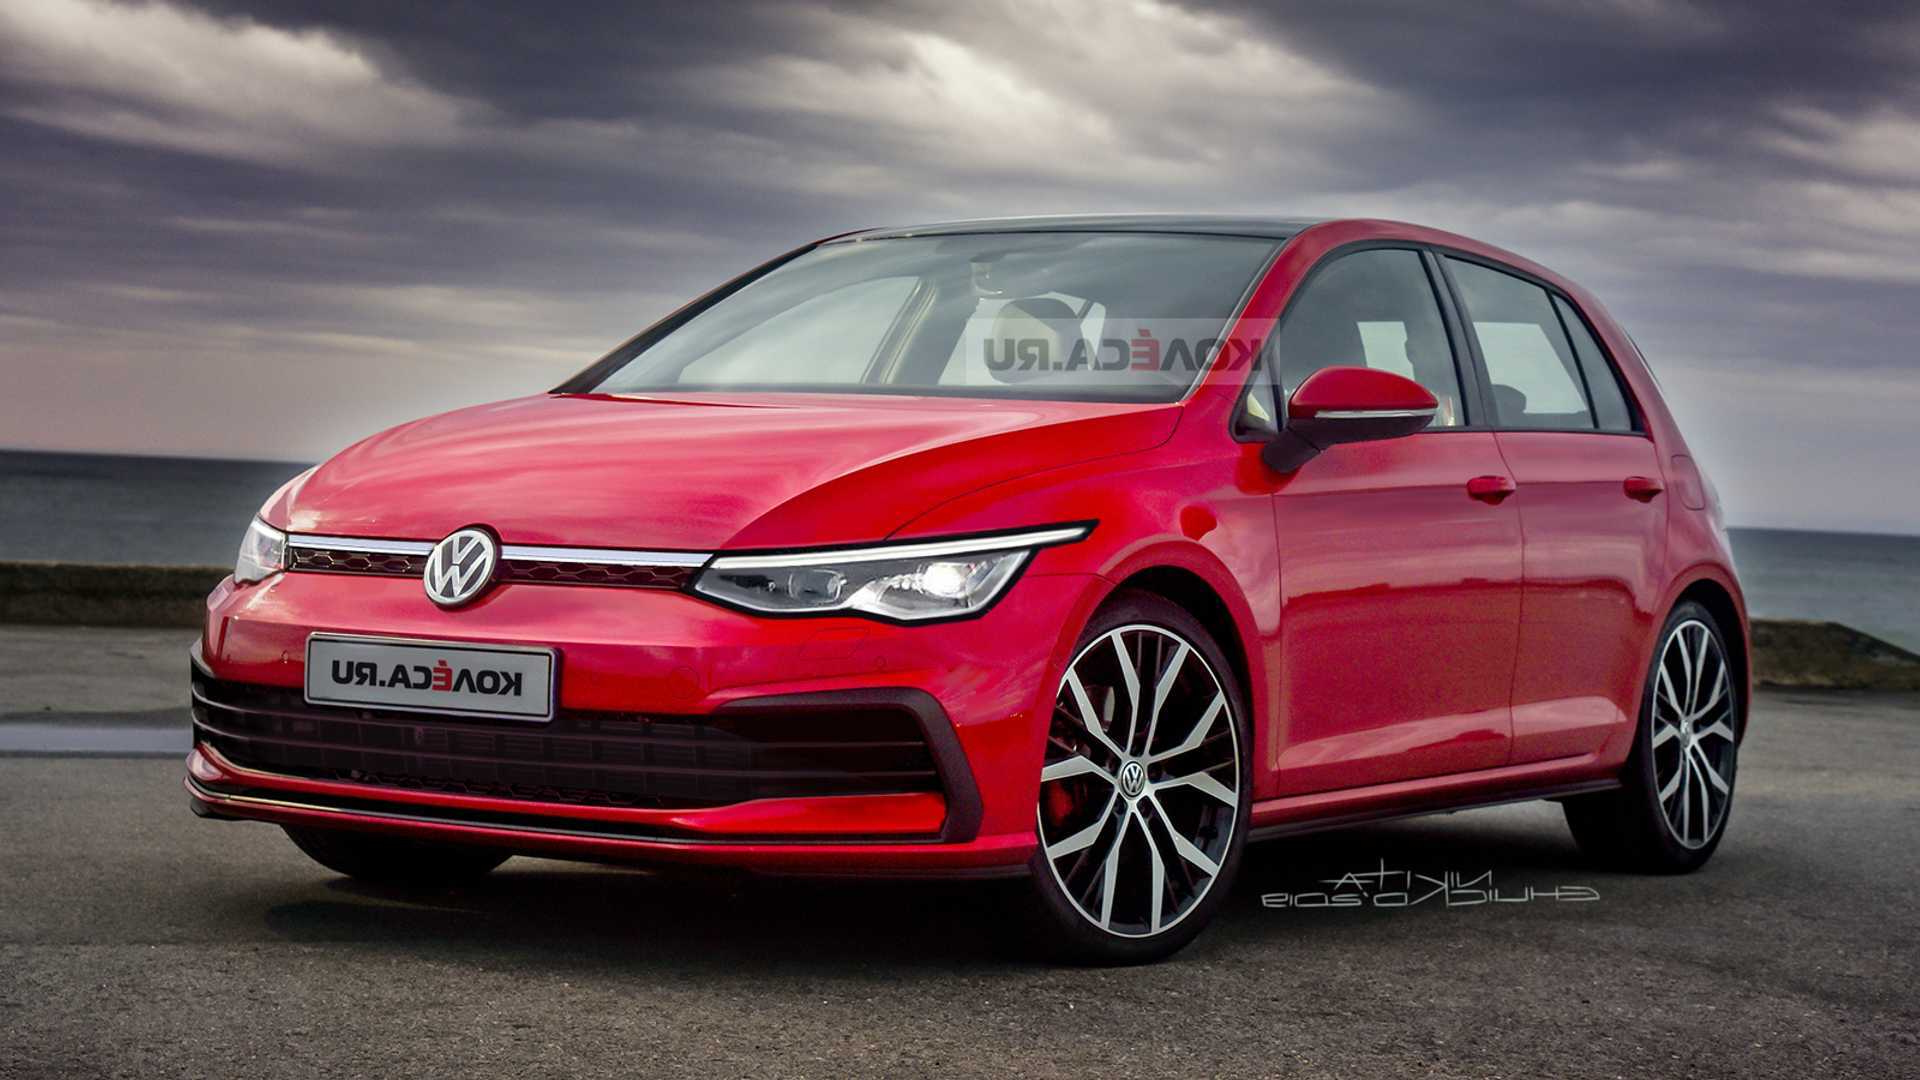 Next-Generation Vw Golf Base Model Coming To Canada